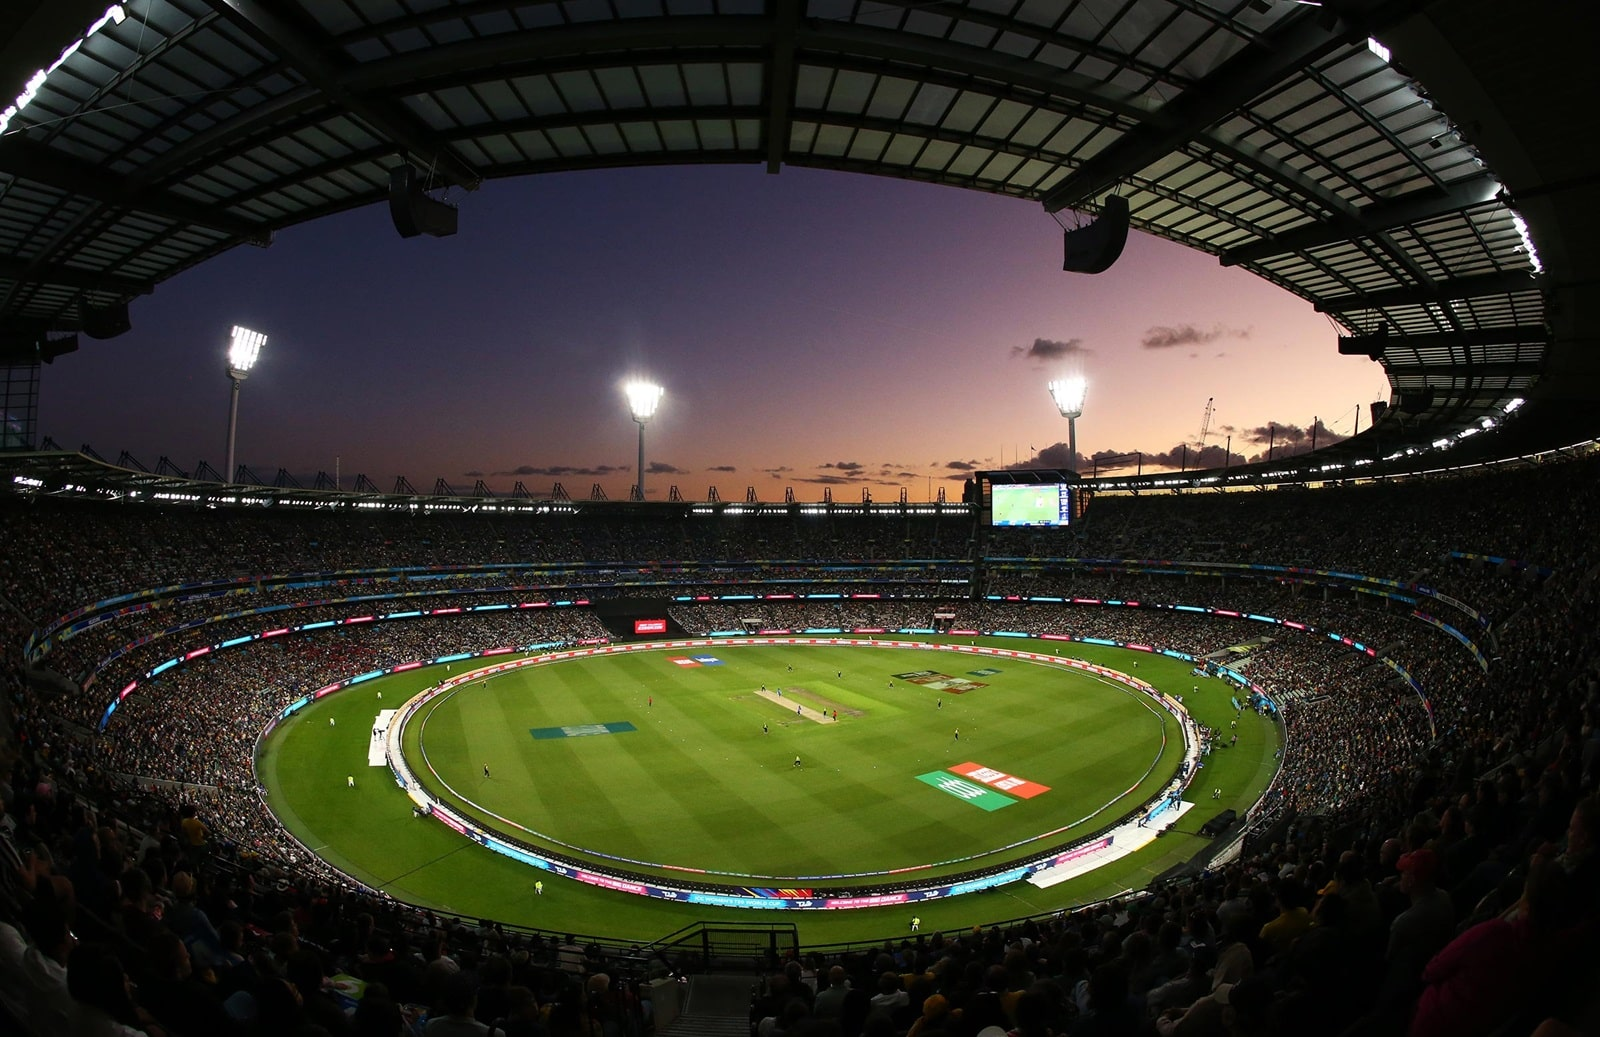 IPL 2021: Chakravarty, Warrier tests positive for COVID 19, match rescheduled